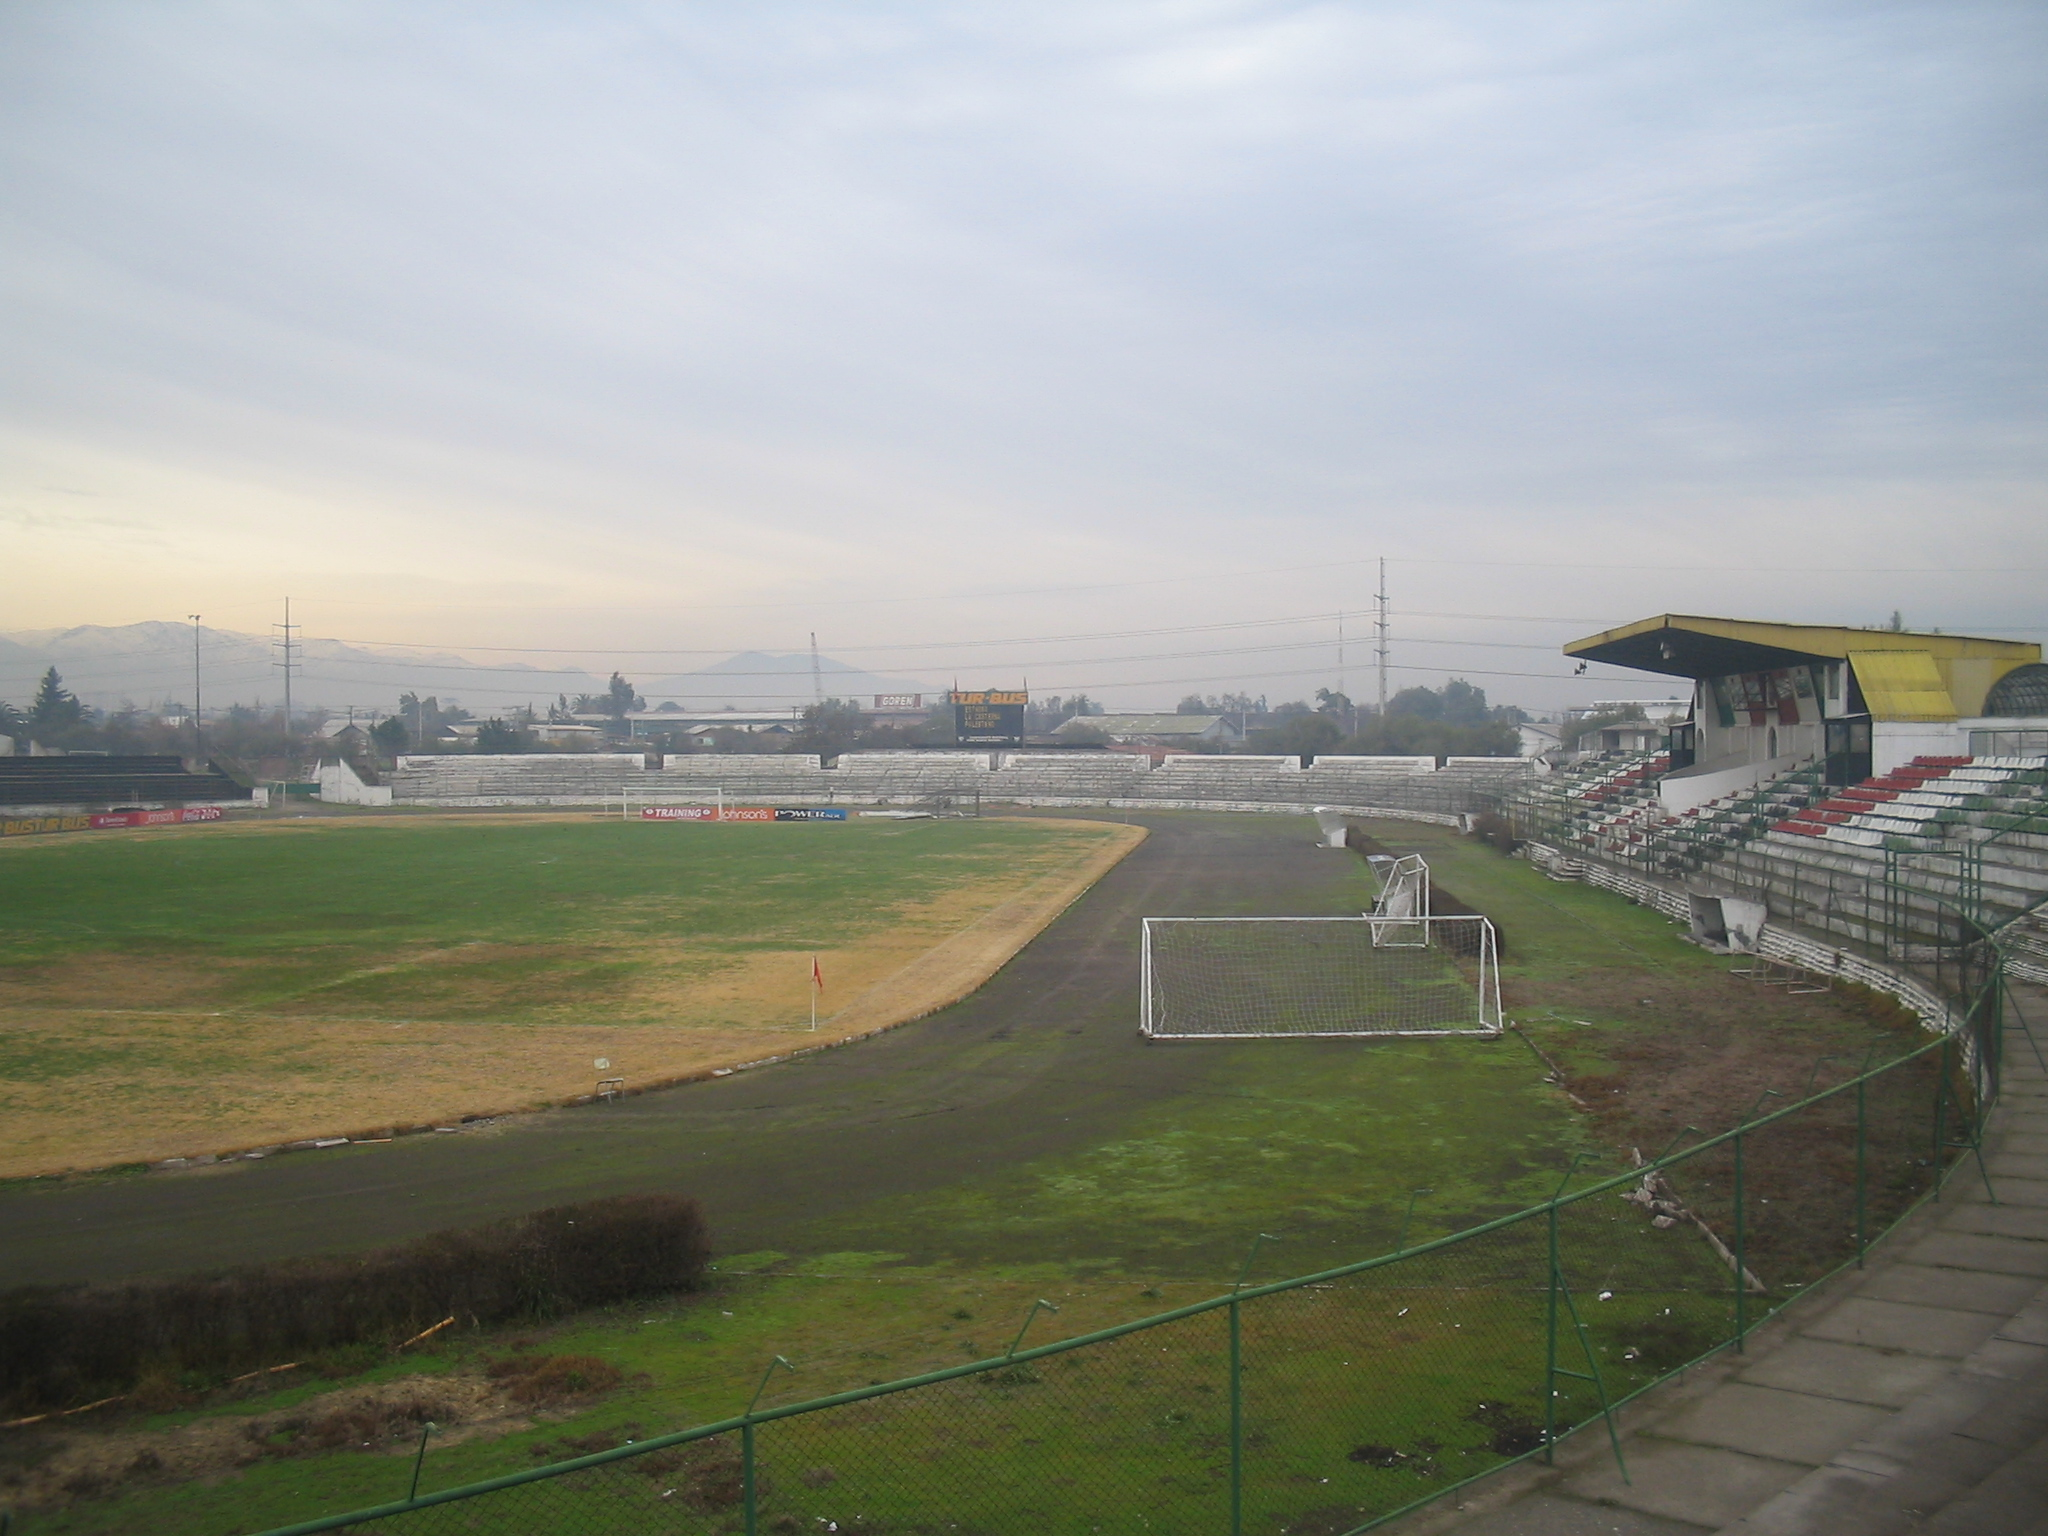 http://upload.wikimedia.org/wikipedia/commons/2/29/EstadioMunicipaldeLaCisterna.jpg